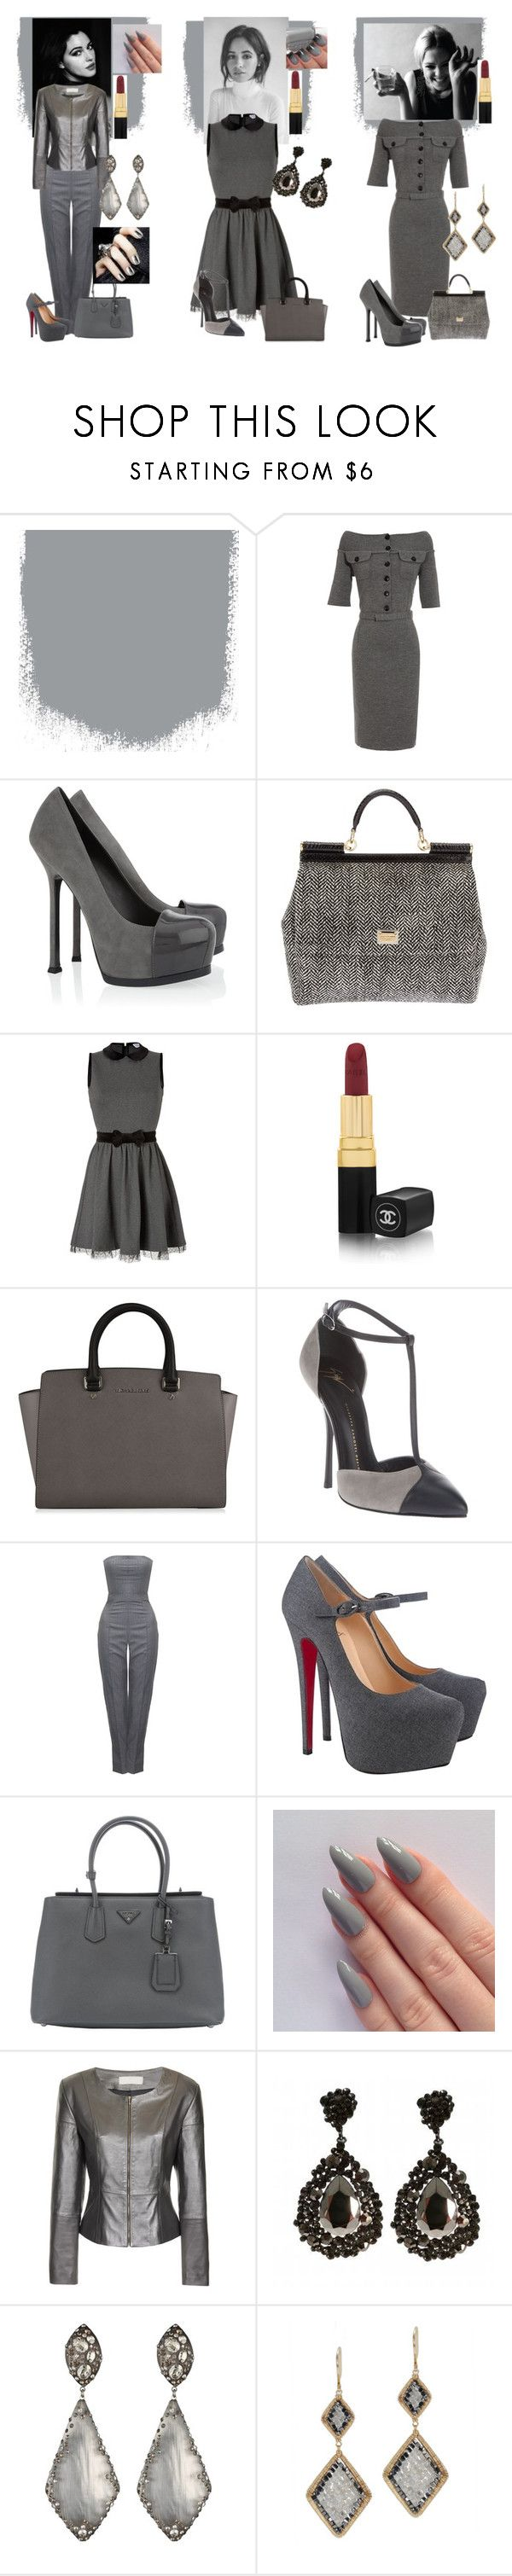 """""""The Ladys Grey!"""" by emily-dickson-1 ❤ liked on Polyvore featuring Sedgwick, Christian Dior, Yves Saint Laurent, Dolce&Gabbana, RED Valentino, Chanel, Giuseppe Zanotti, Alexander McQueen, Christian Louboutin and Prada"""